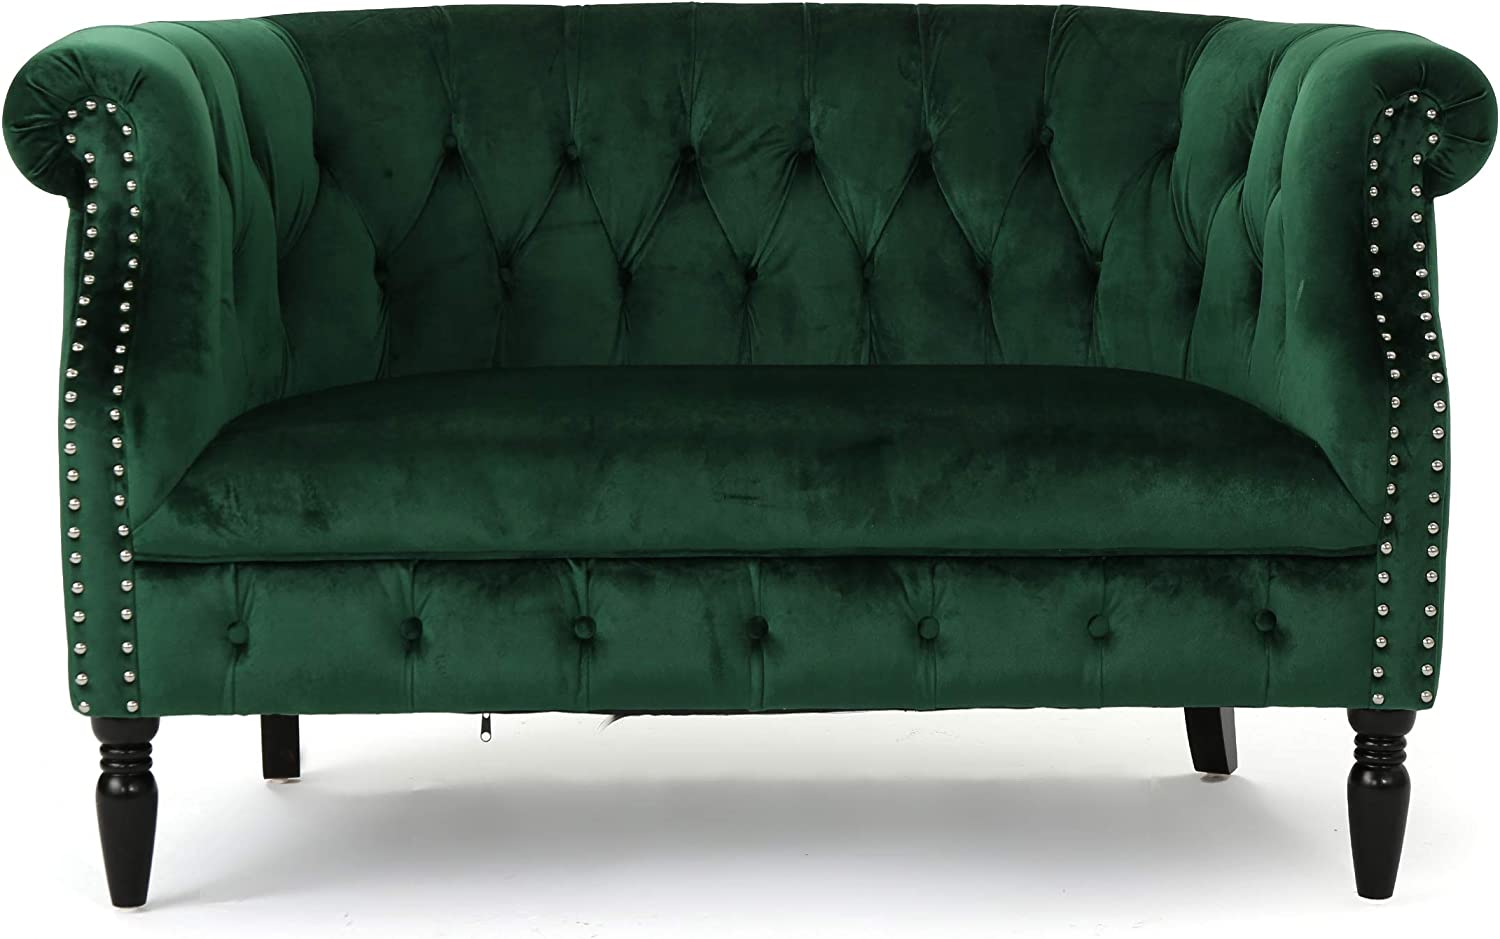 Melaina Tufted Chesterfield Velvet Loveseat with Scrolled Arms, Emerald and Dark Brown